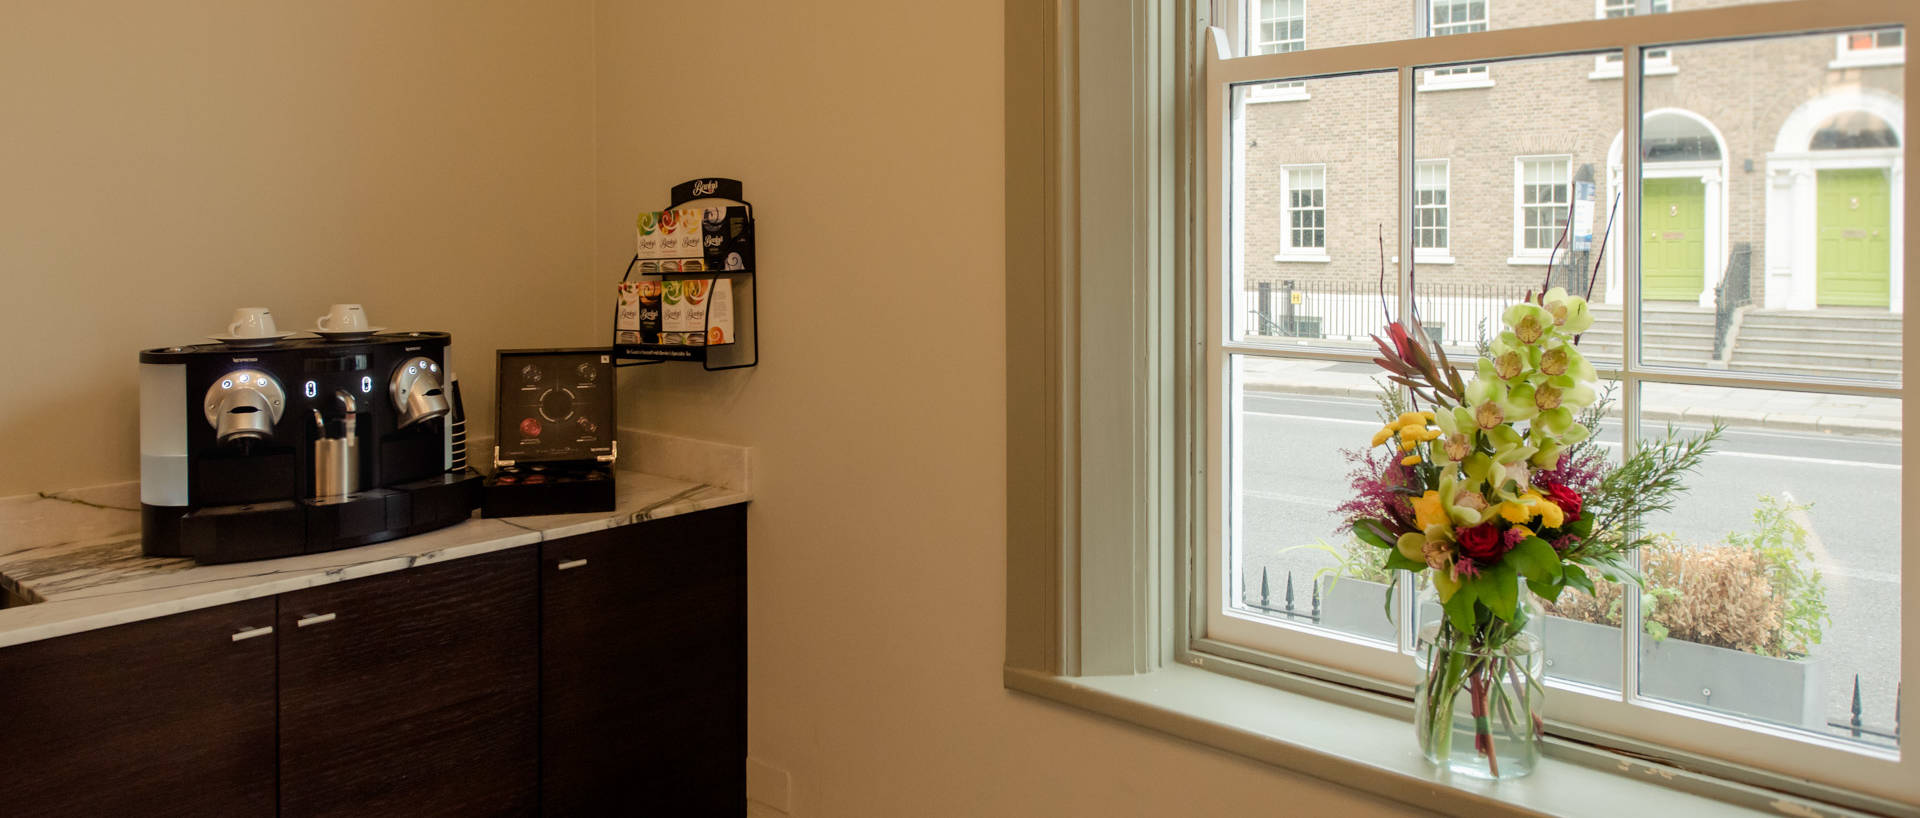 PREMIER SUITES PLUS Leeson Street window and coffee